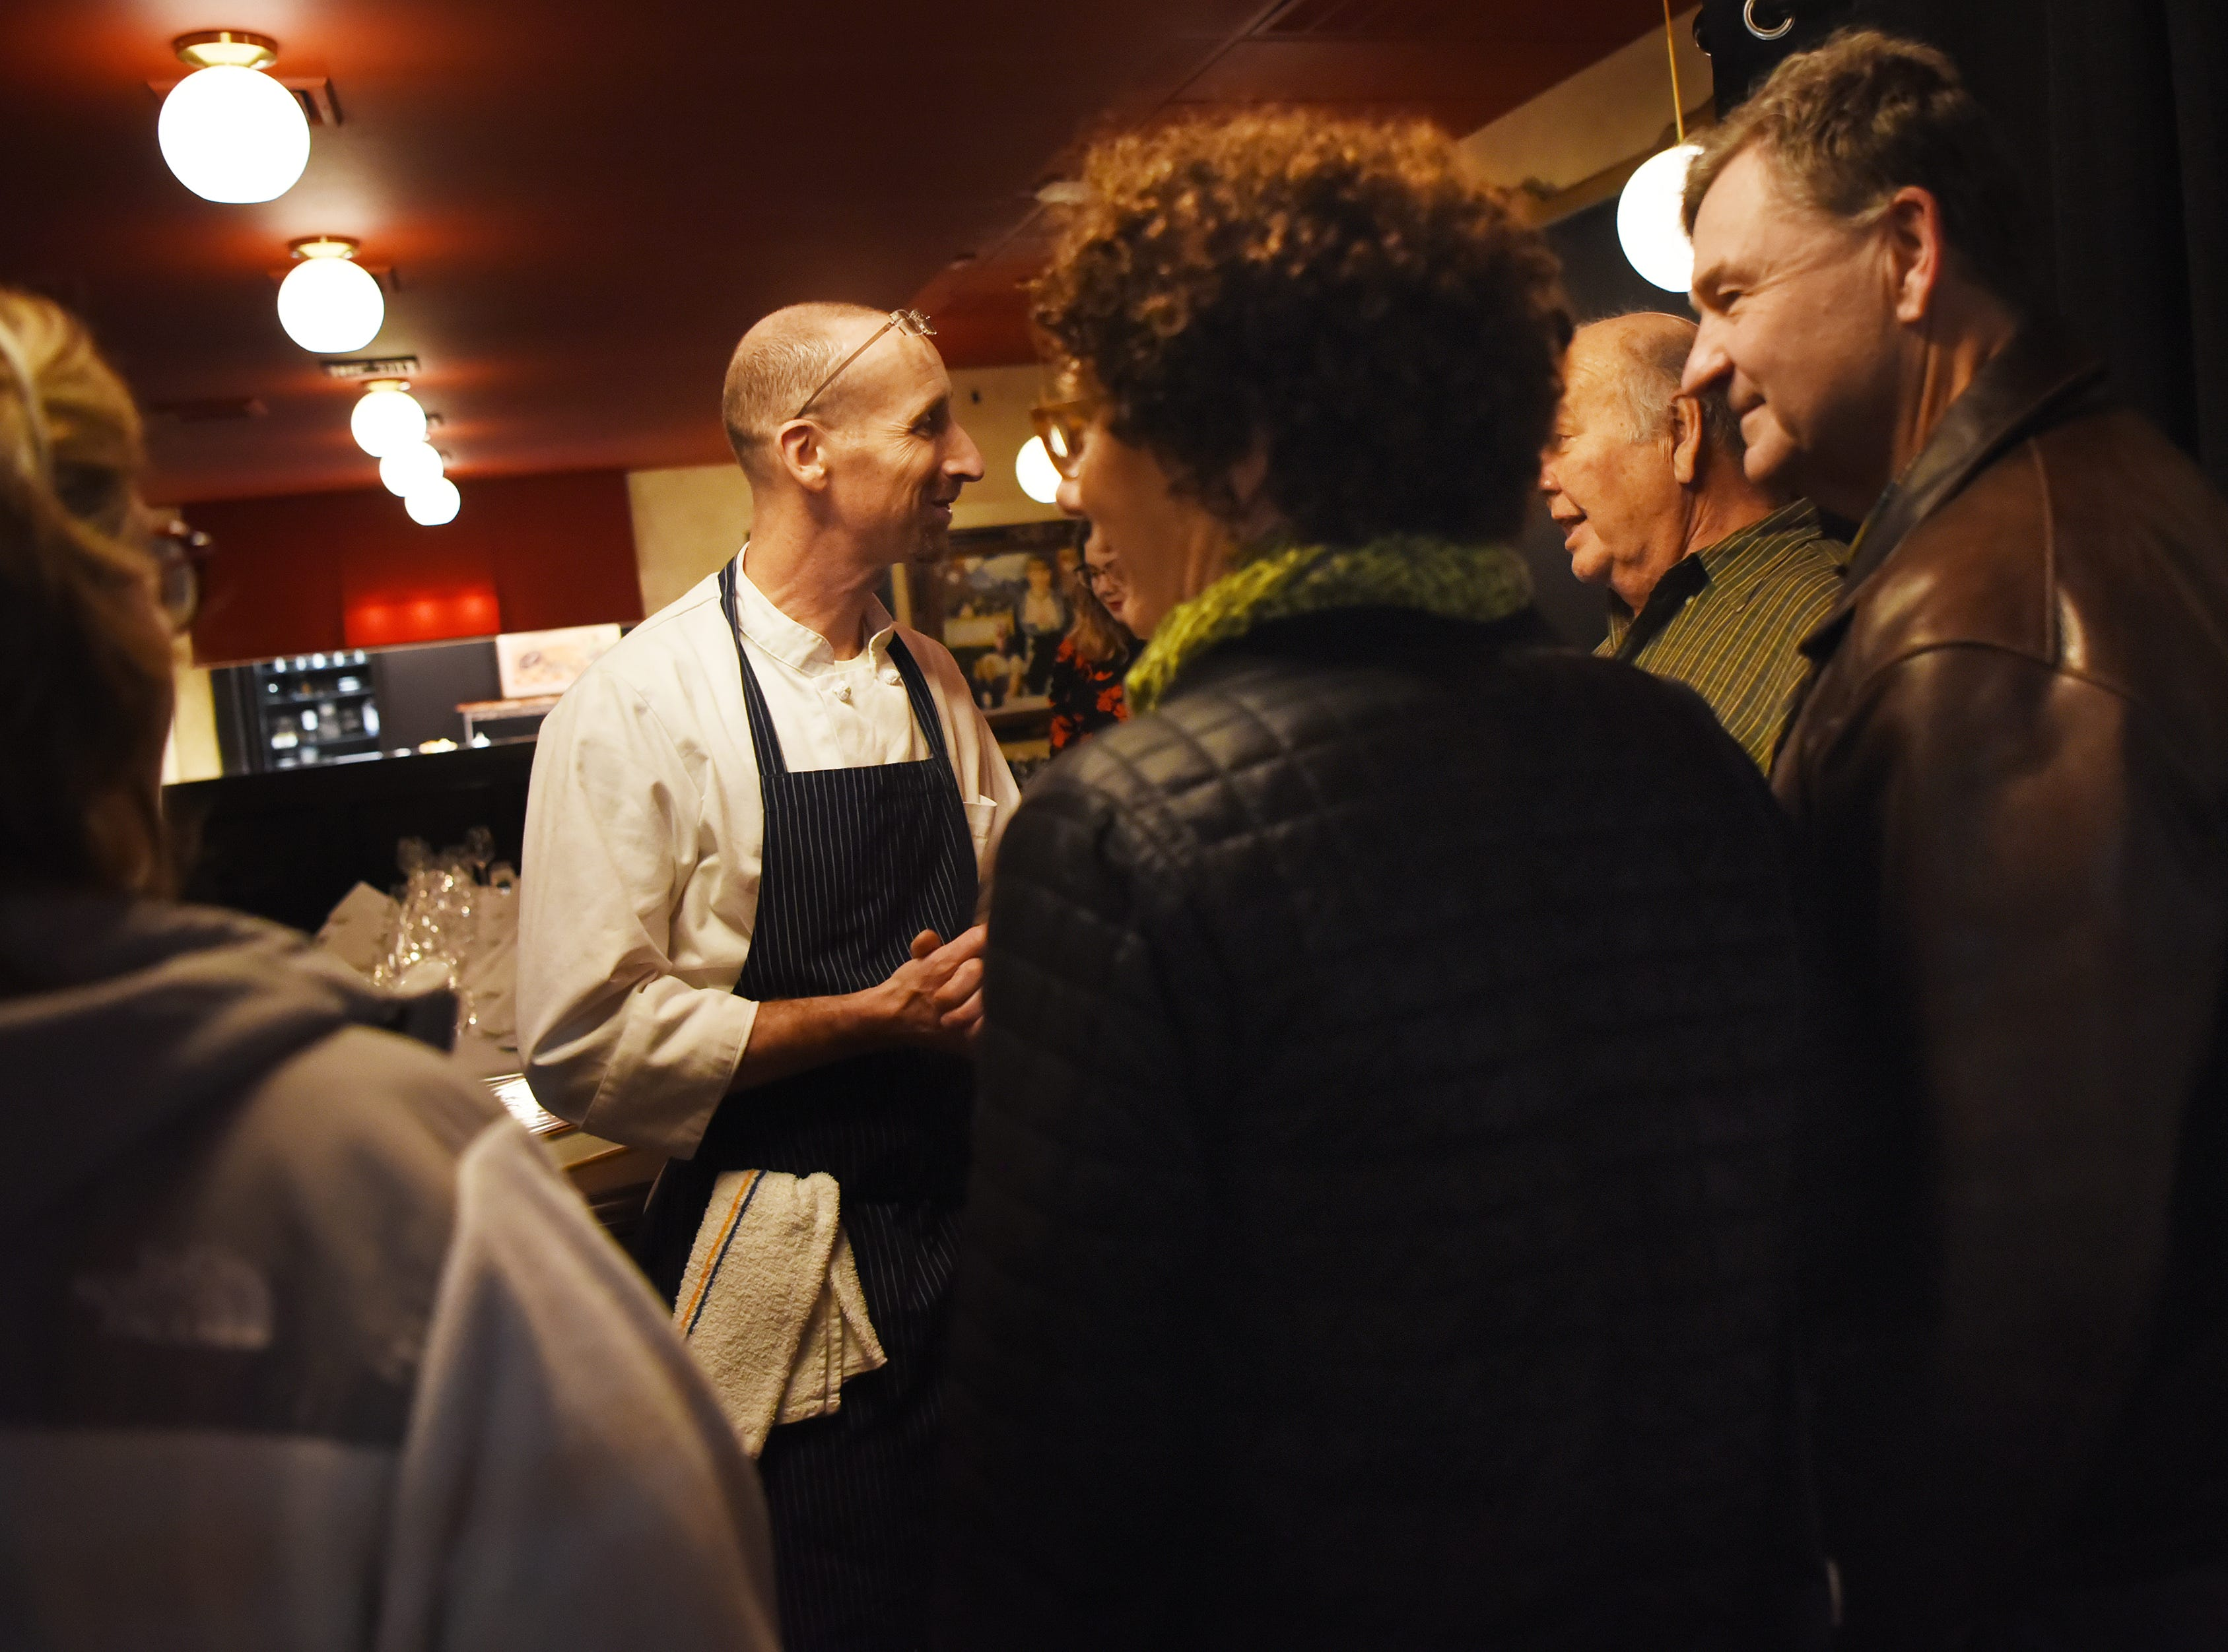 Chef/Owner Ross Goldflam greets guests during the dinner with Esther event at Technique, a French restaurant in Westwood on Thursday February 7, 2019.